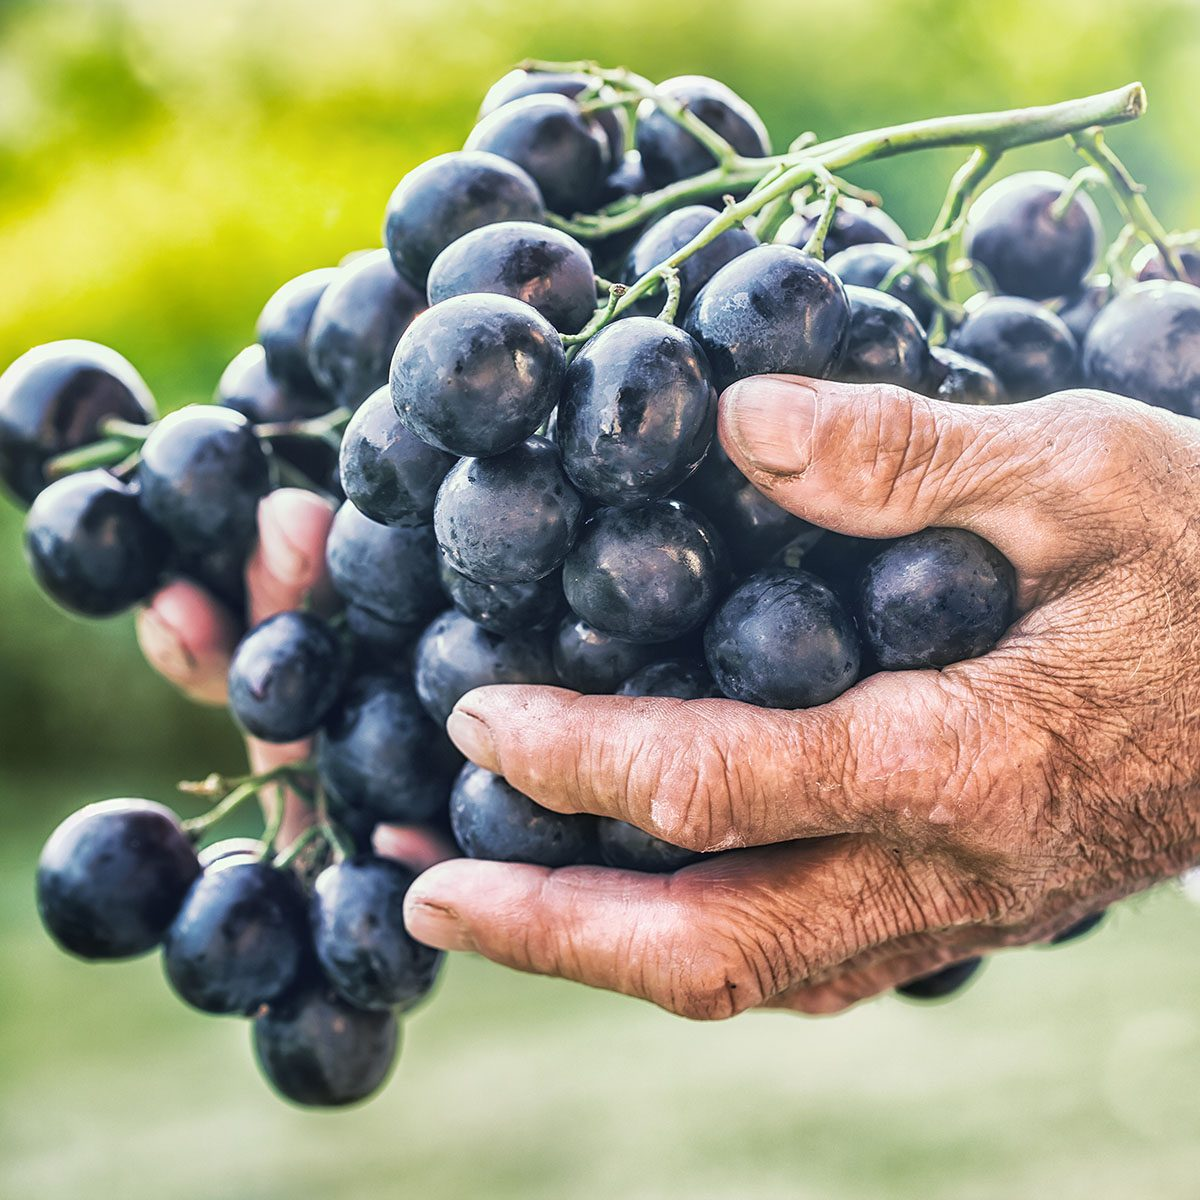 Black or blue bunch grapes in hand old senior farmer.